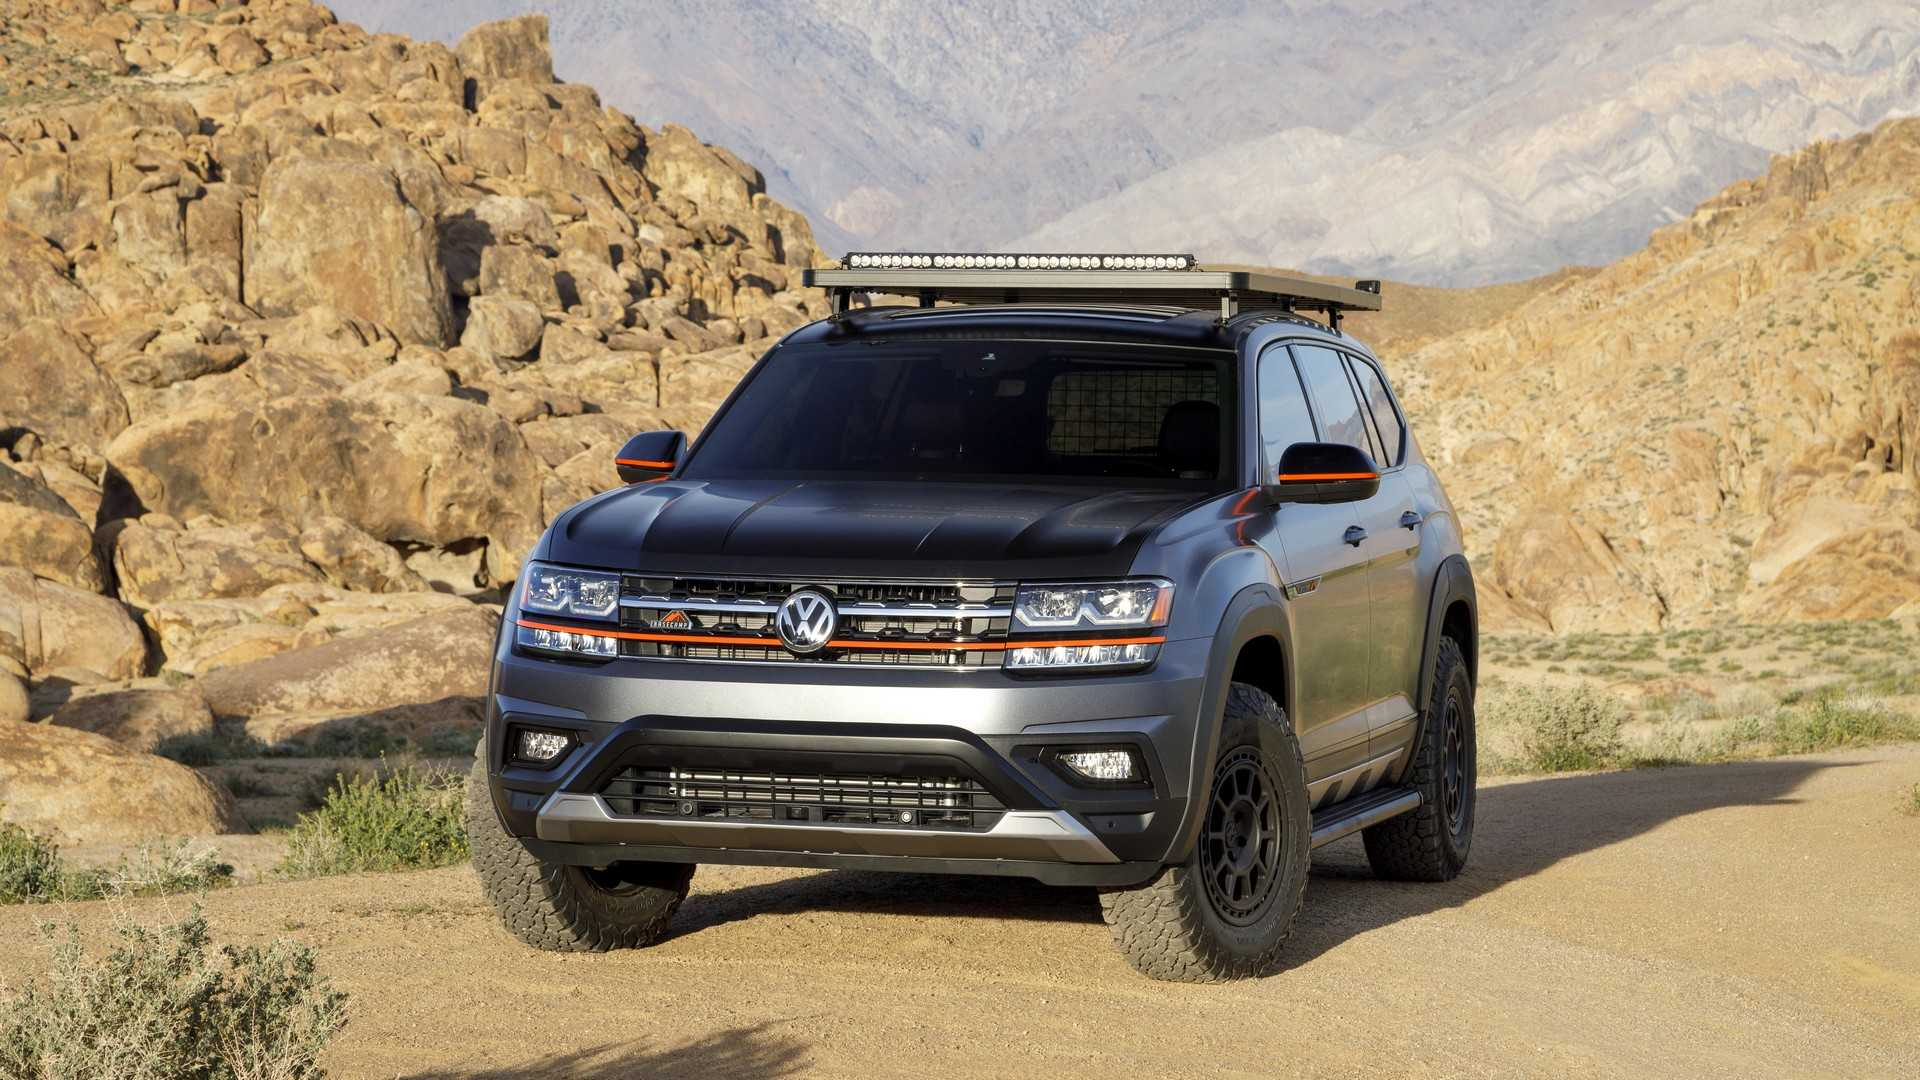 The North American subdivision of Volkswagen has unveiled the Atlas Basecamp Concept, a large seven-seat SUV reportedly ideal for long trips into the wilderness